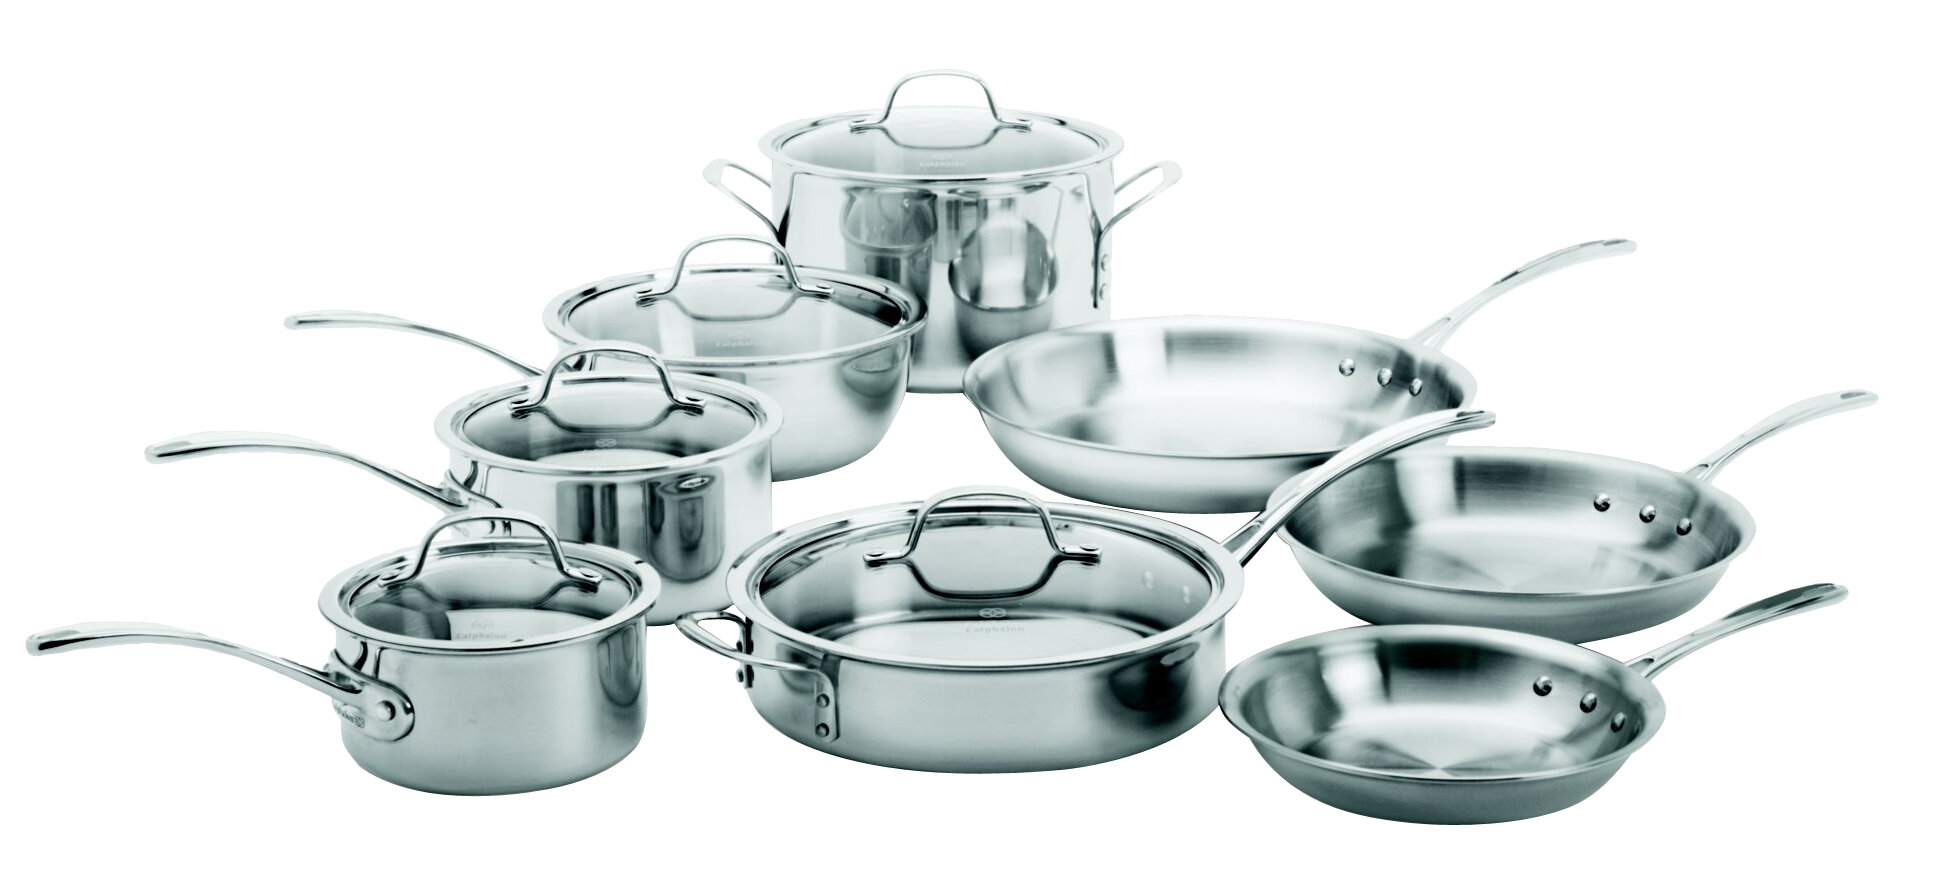 Calphalon Tri-Ply Stainless Steel 13 Piece Cookware Set & Reviews ...